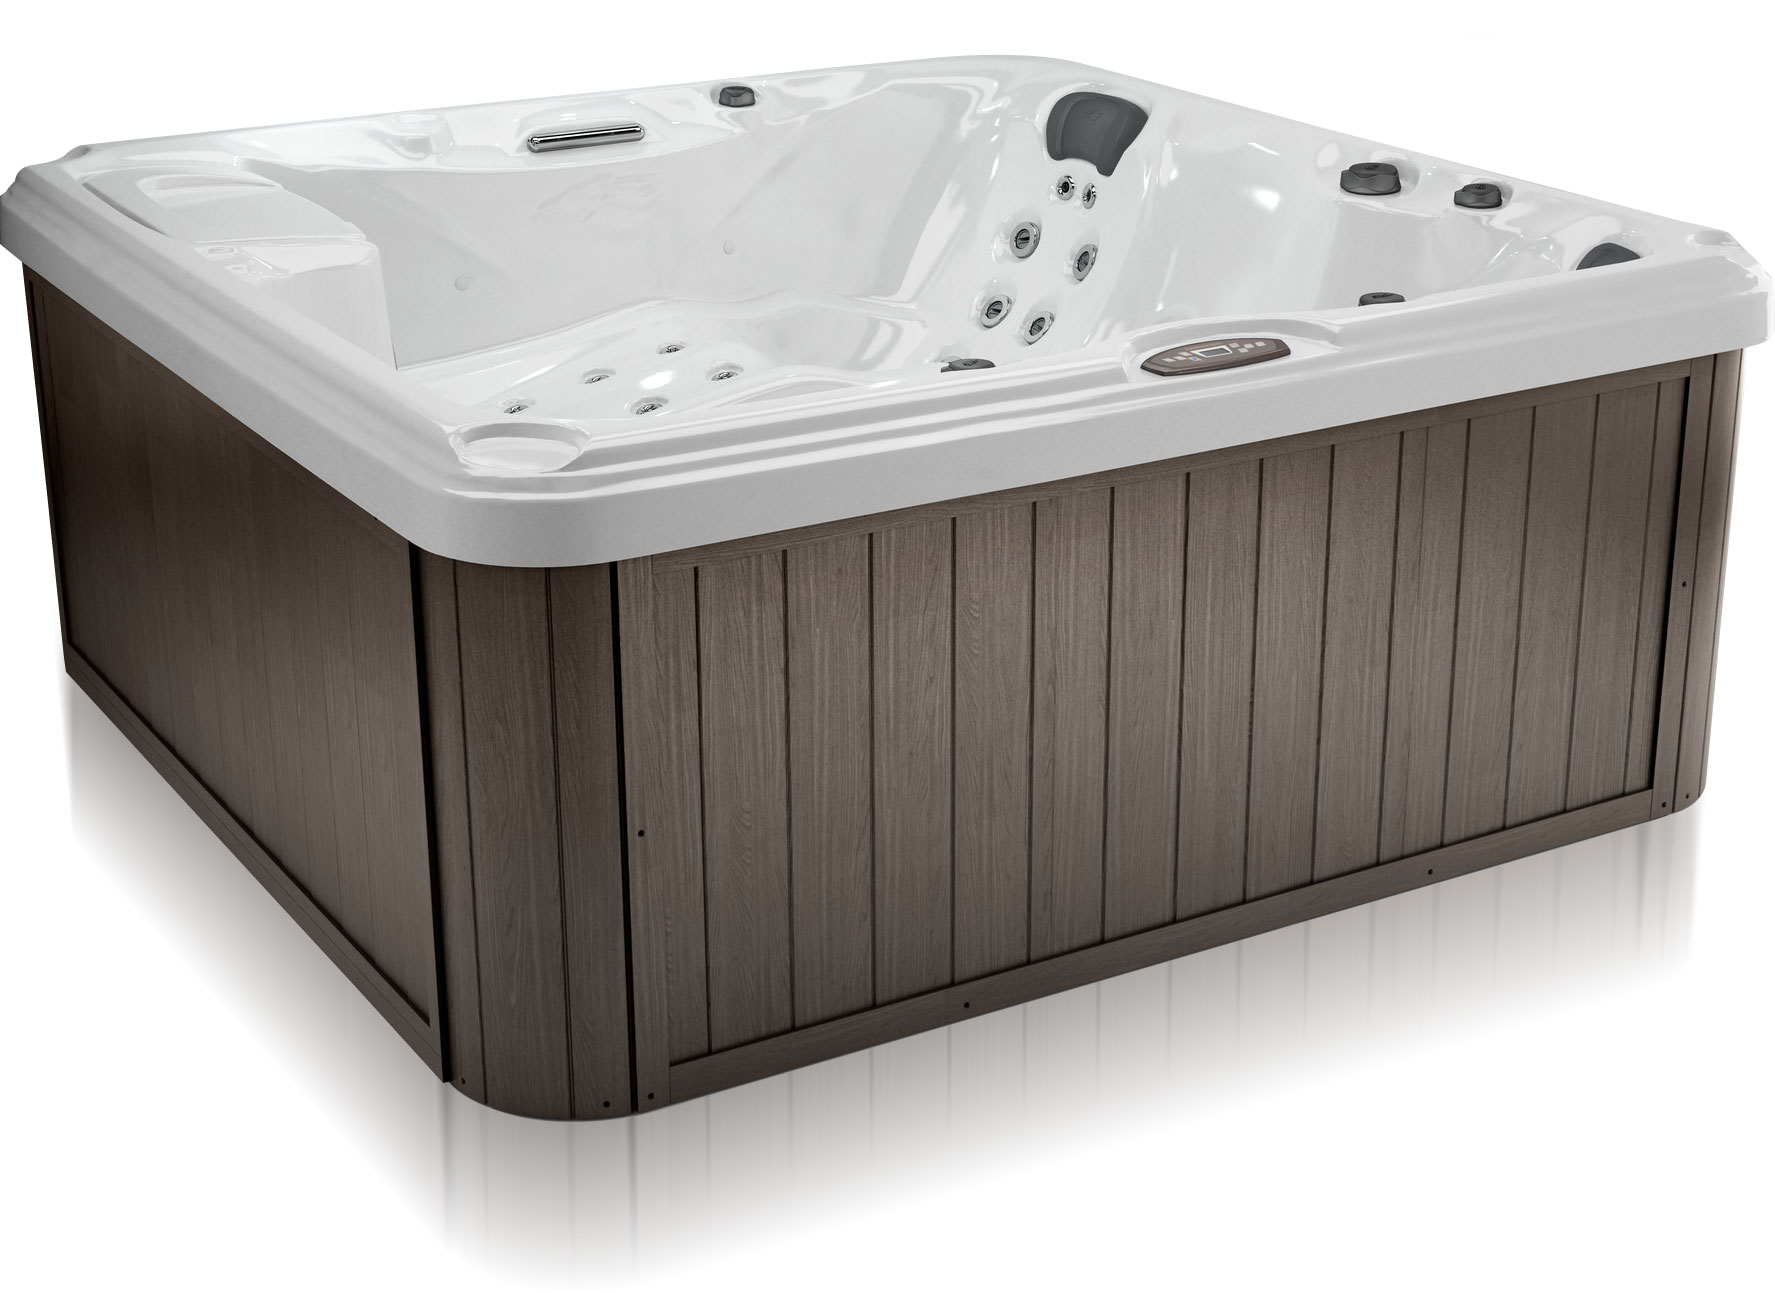 Sundance Spas 780 series Hamilton hot tub.